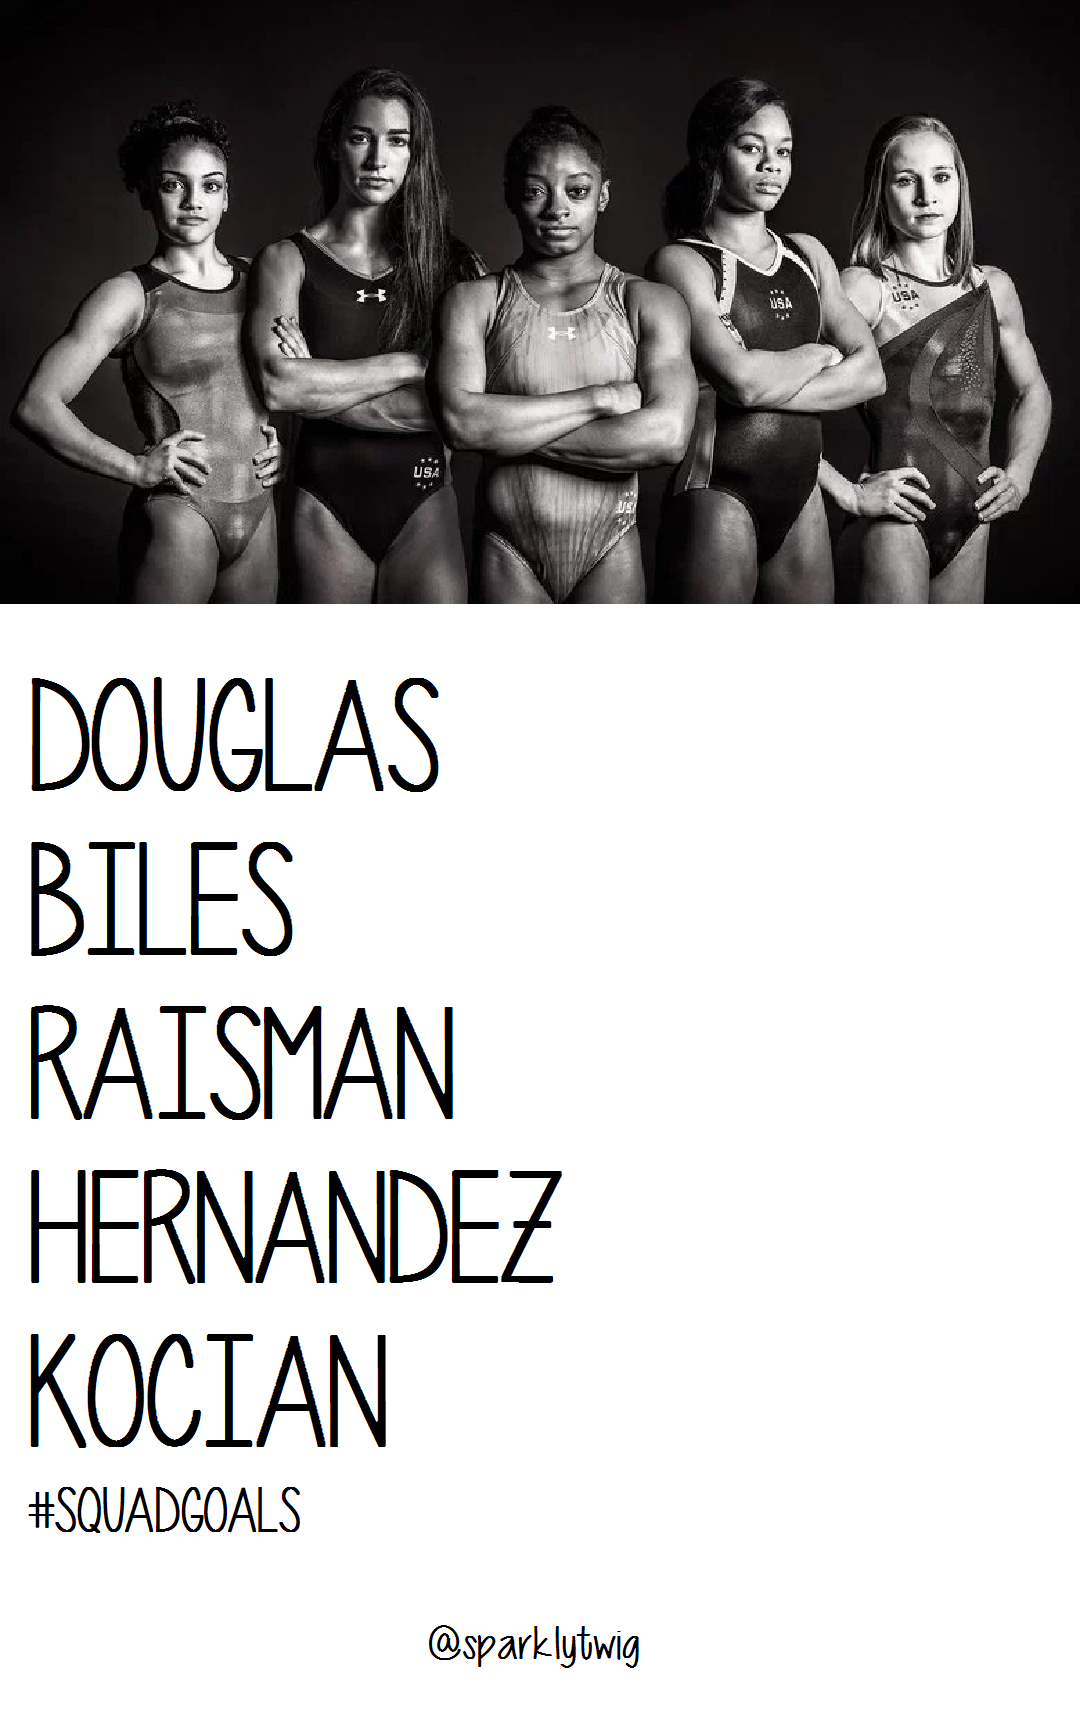 Team USA Olympic Women's Gymnastic Team for the 2016 Rio Olympics. These ladies have been so fierce on the Road to Rio!